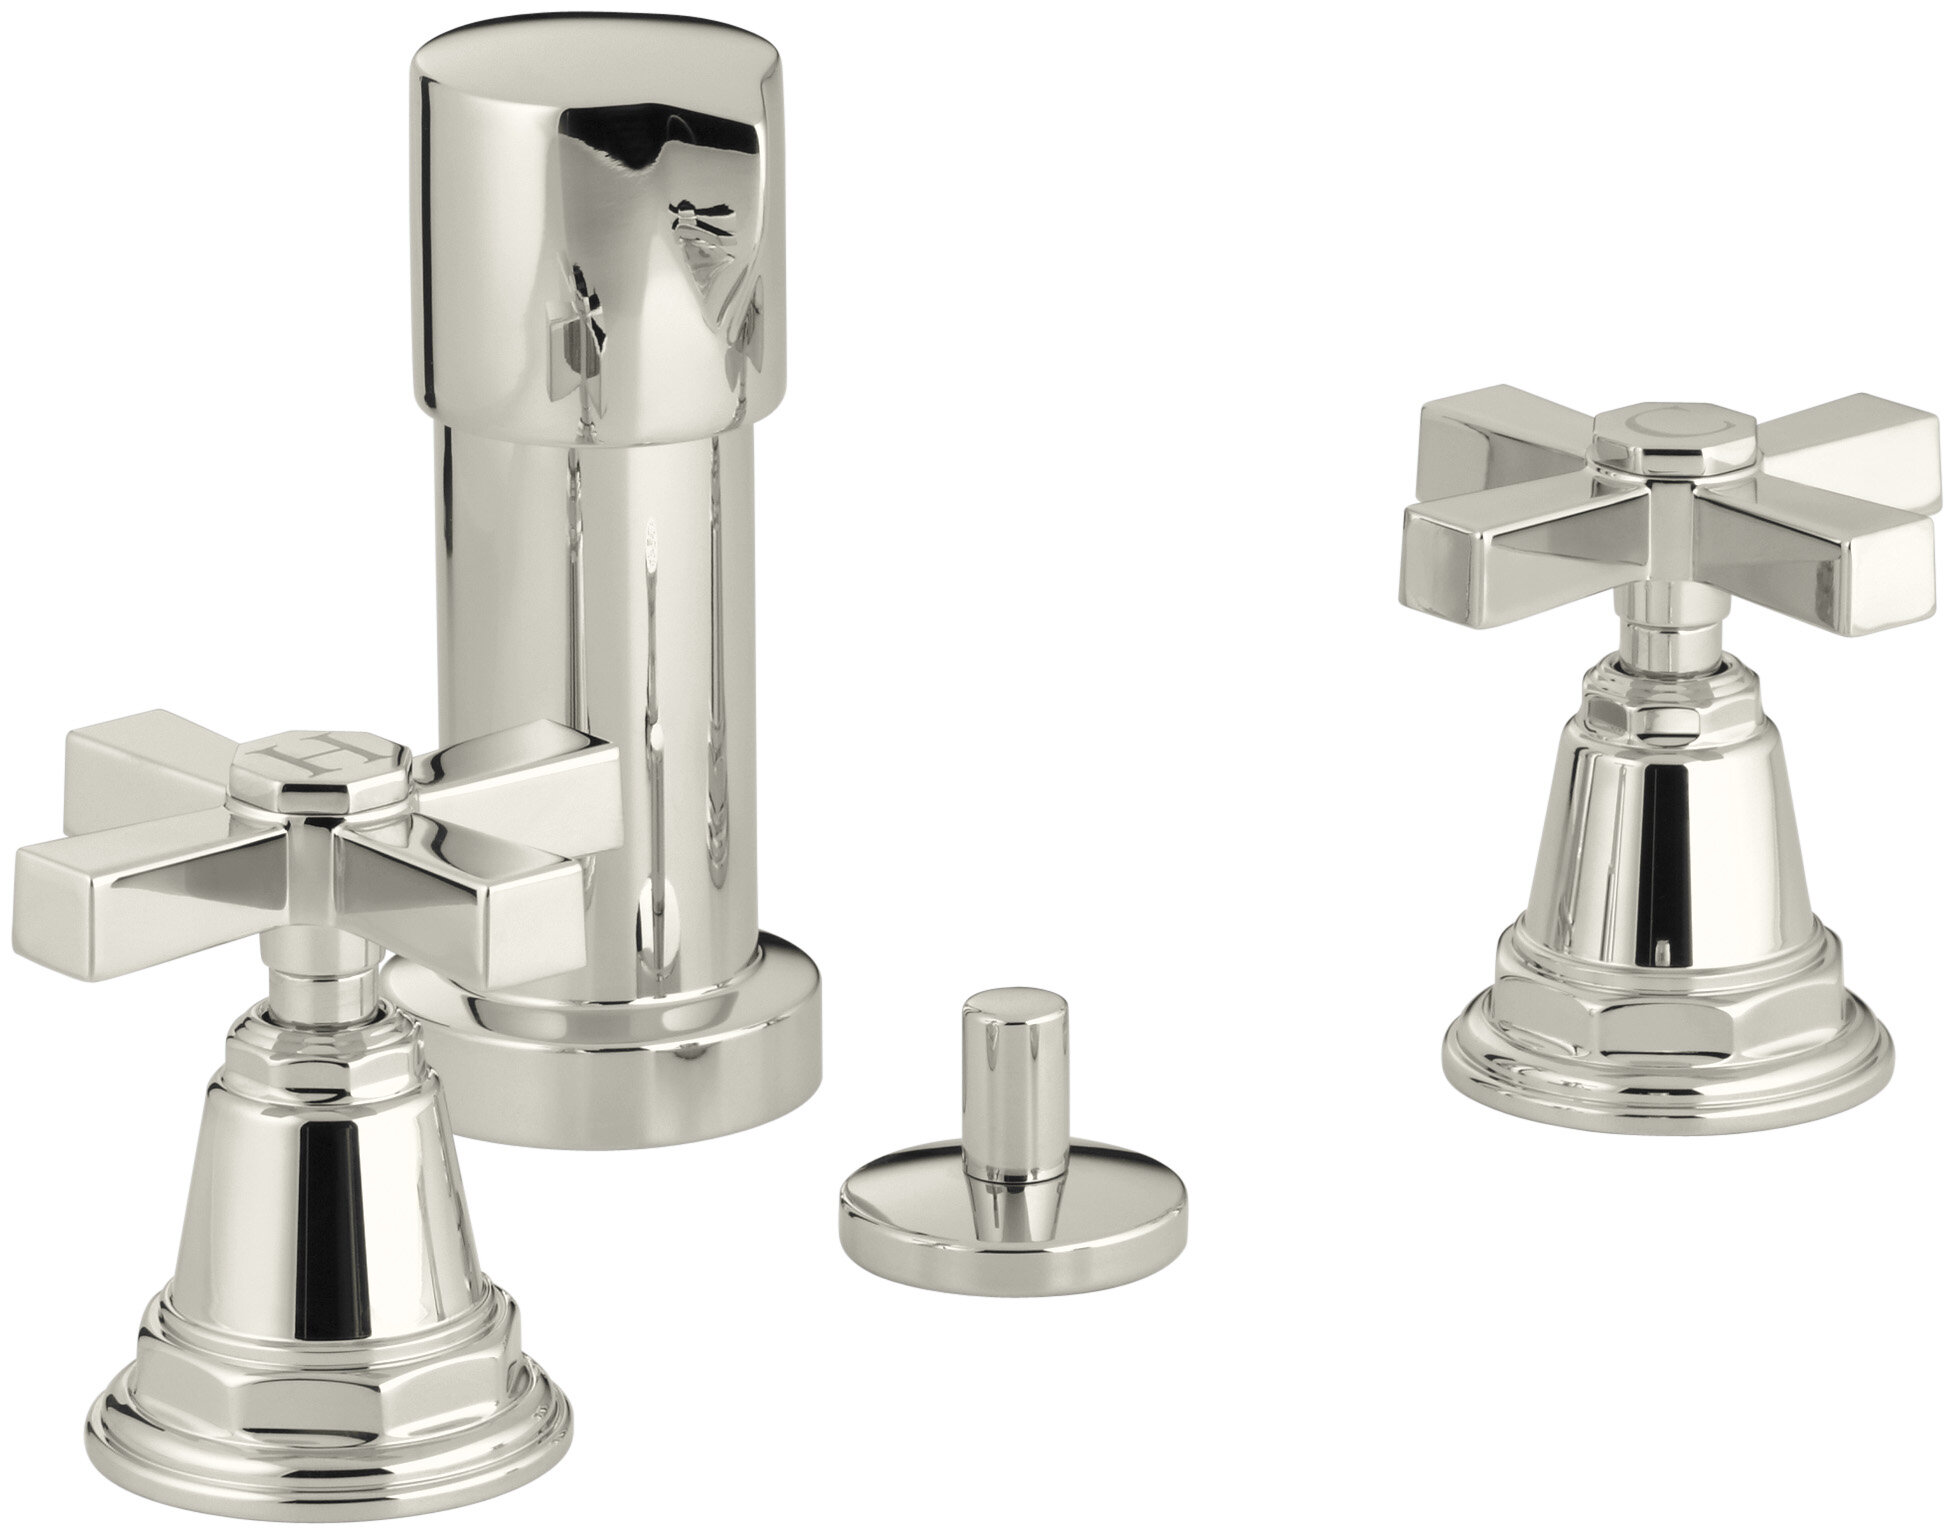 Kohler Pinstripe Pure Vertical Spray Bidet Faucet With Cross Handles Perigold